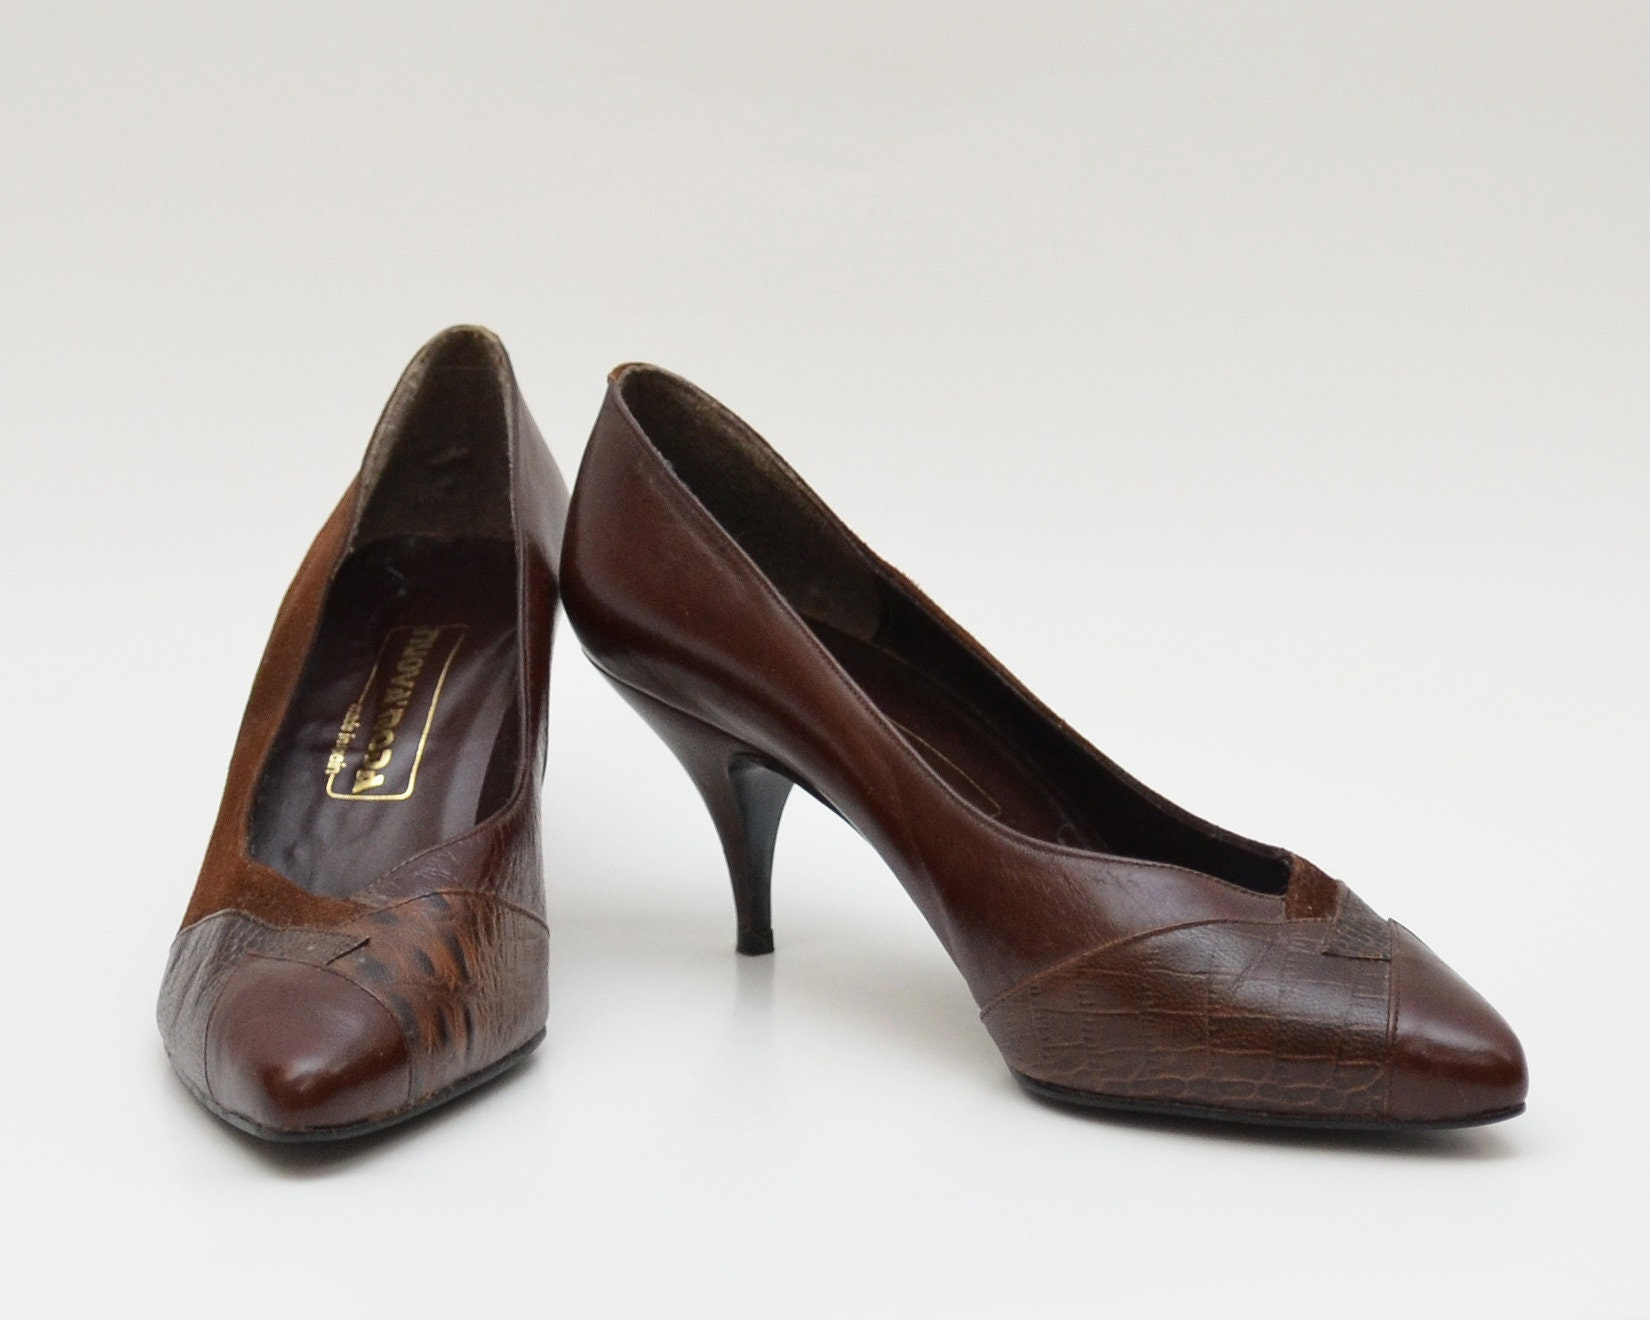 49c02960fb84 Vintage 1980s Brown Almond Toe Leather Heels - Size 7 - Made in ...